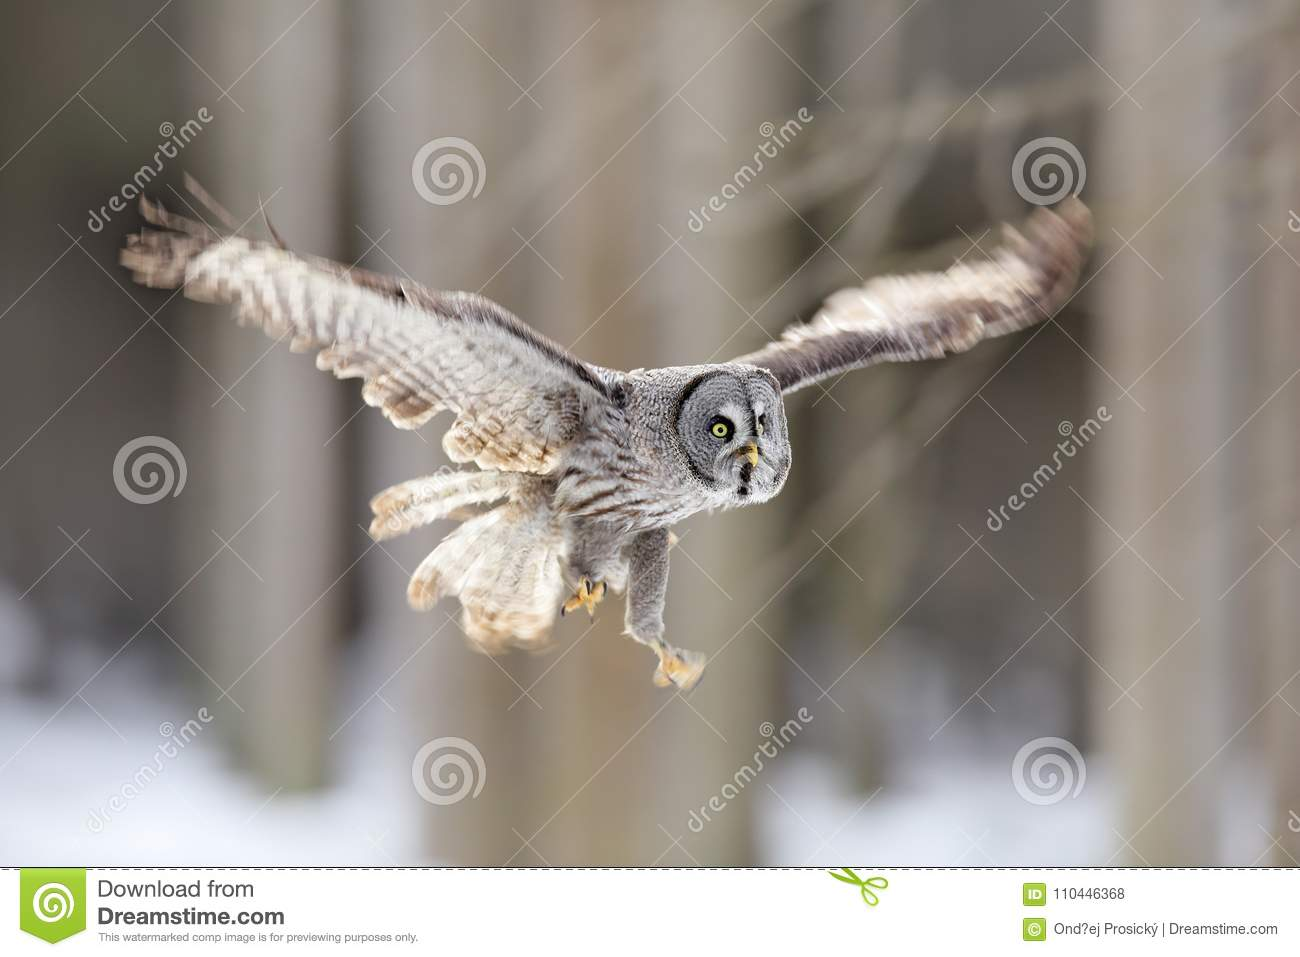 Bird flying. Great Grey Owl, Strix nebulosa, flight in the forest, blurred trees in background. Wildlife animal scene from nature.